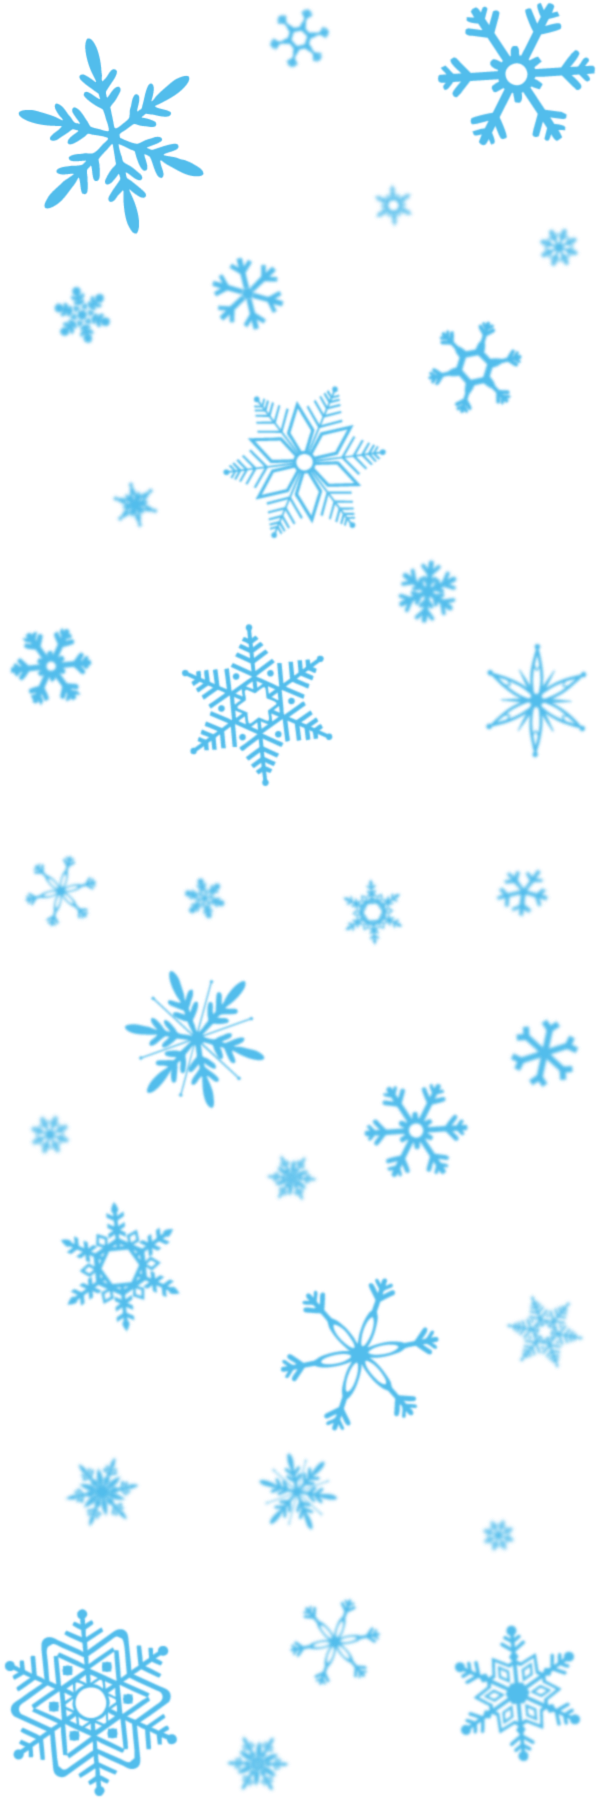 Ice and snowflake clipart png transparent download Snowflakes Transparent PNG Pictures - Free Icons and PNG Backgrounds png transparent download